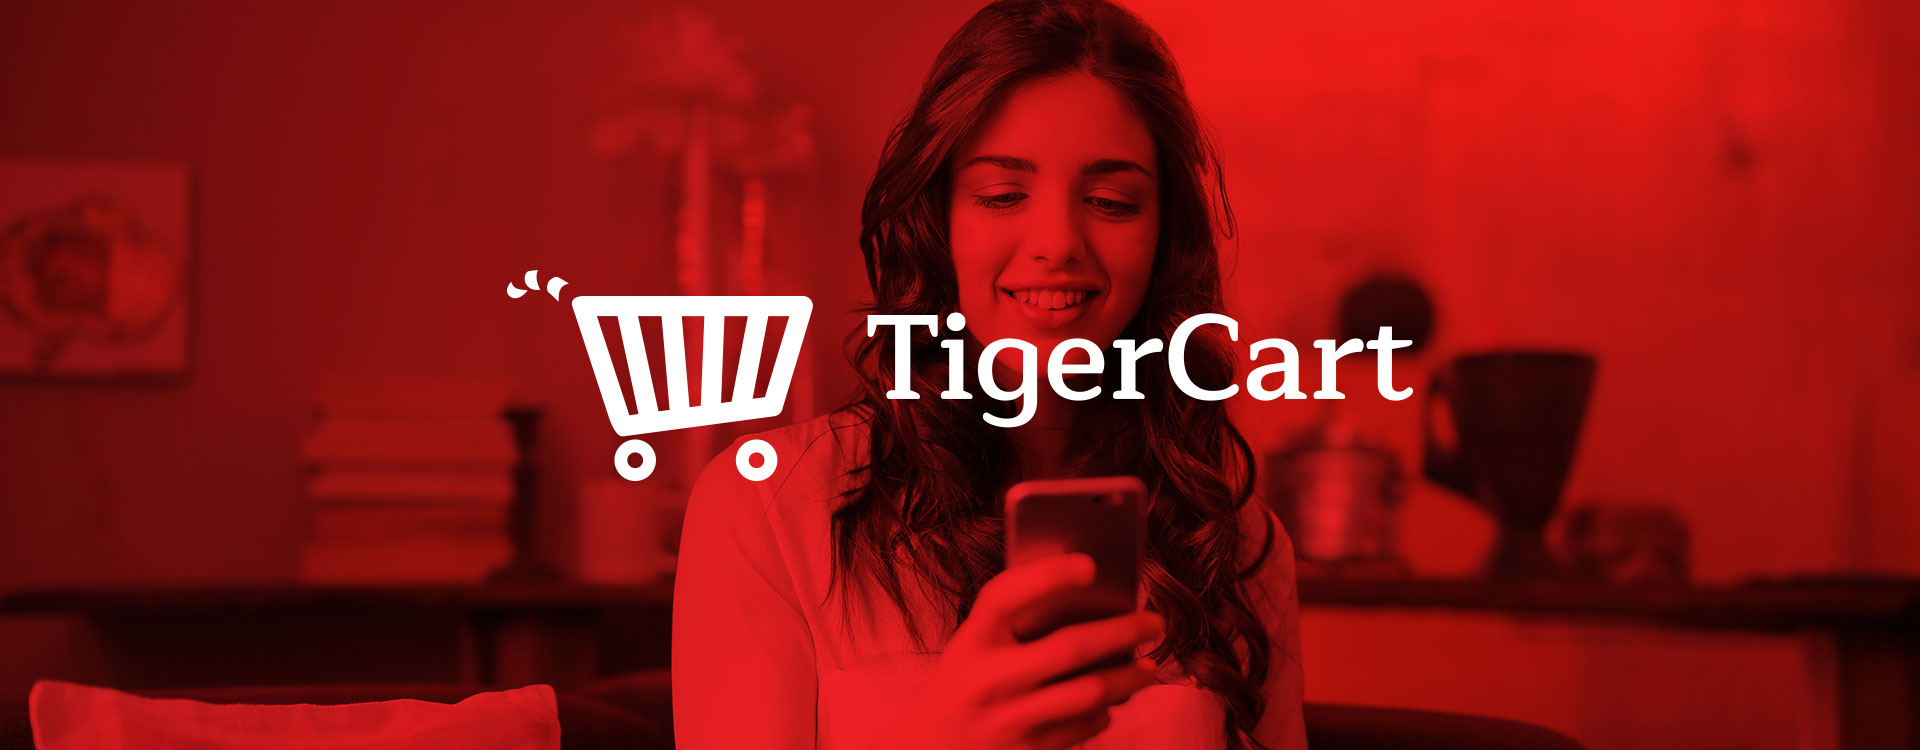 tigercart - Logo design for ecommerce company